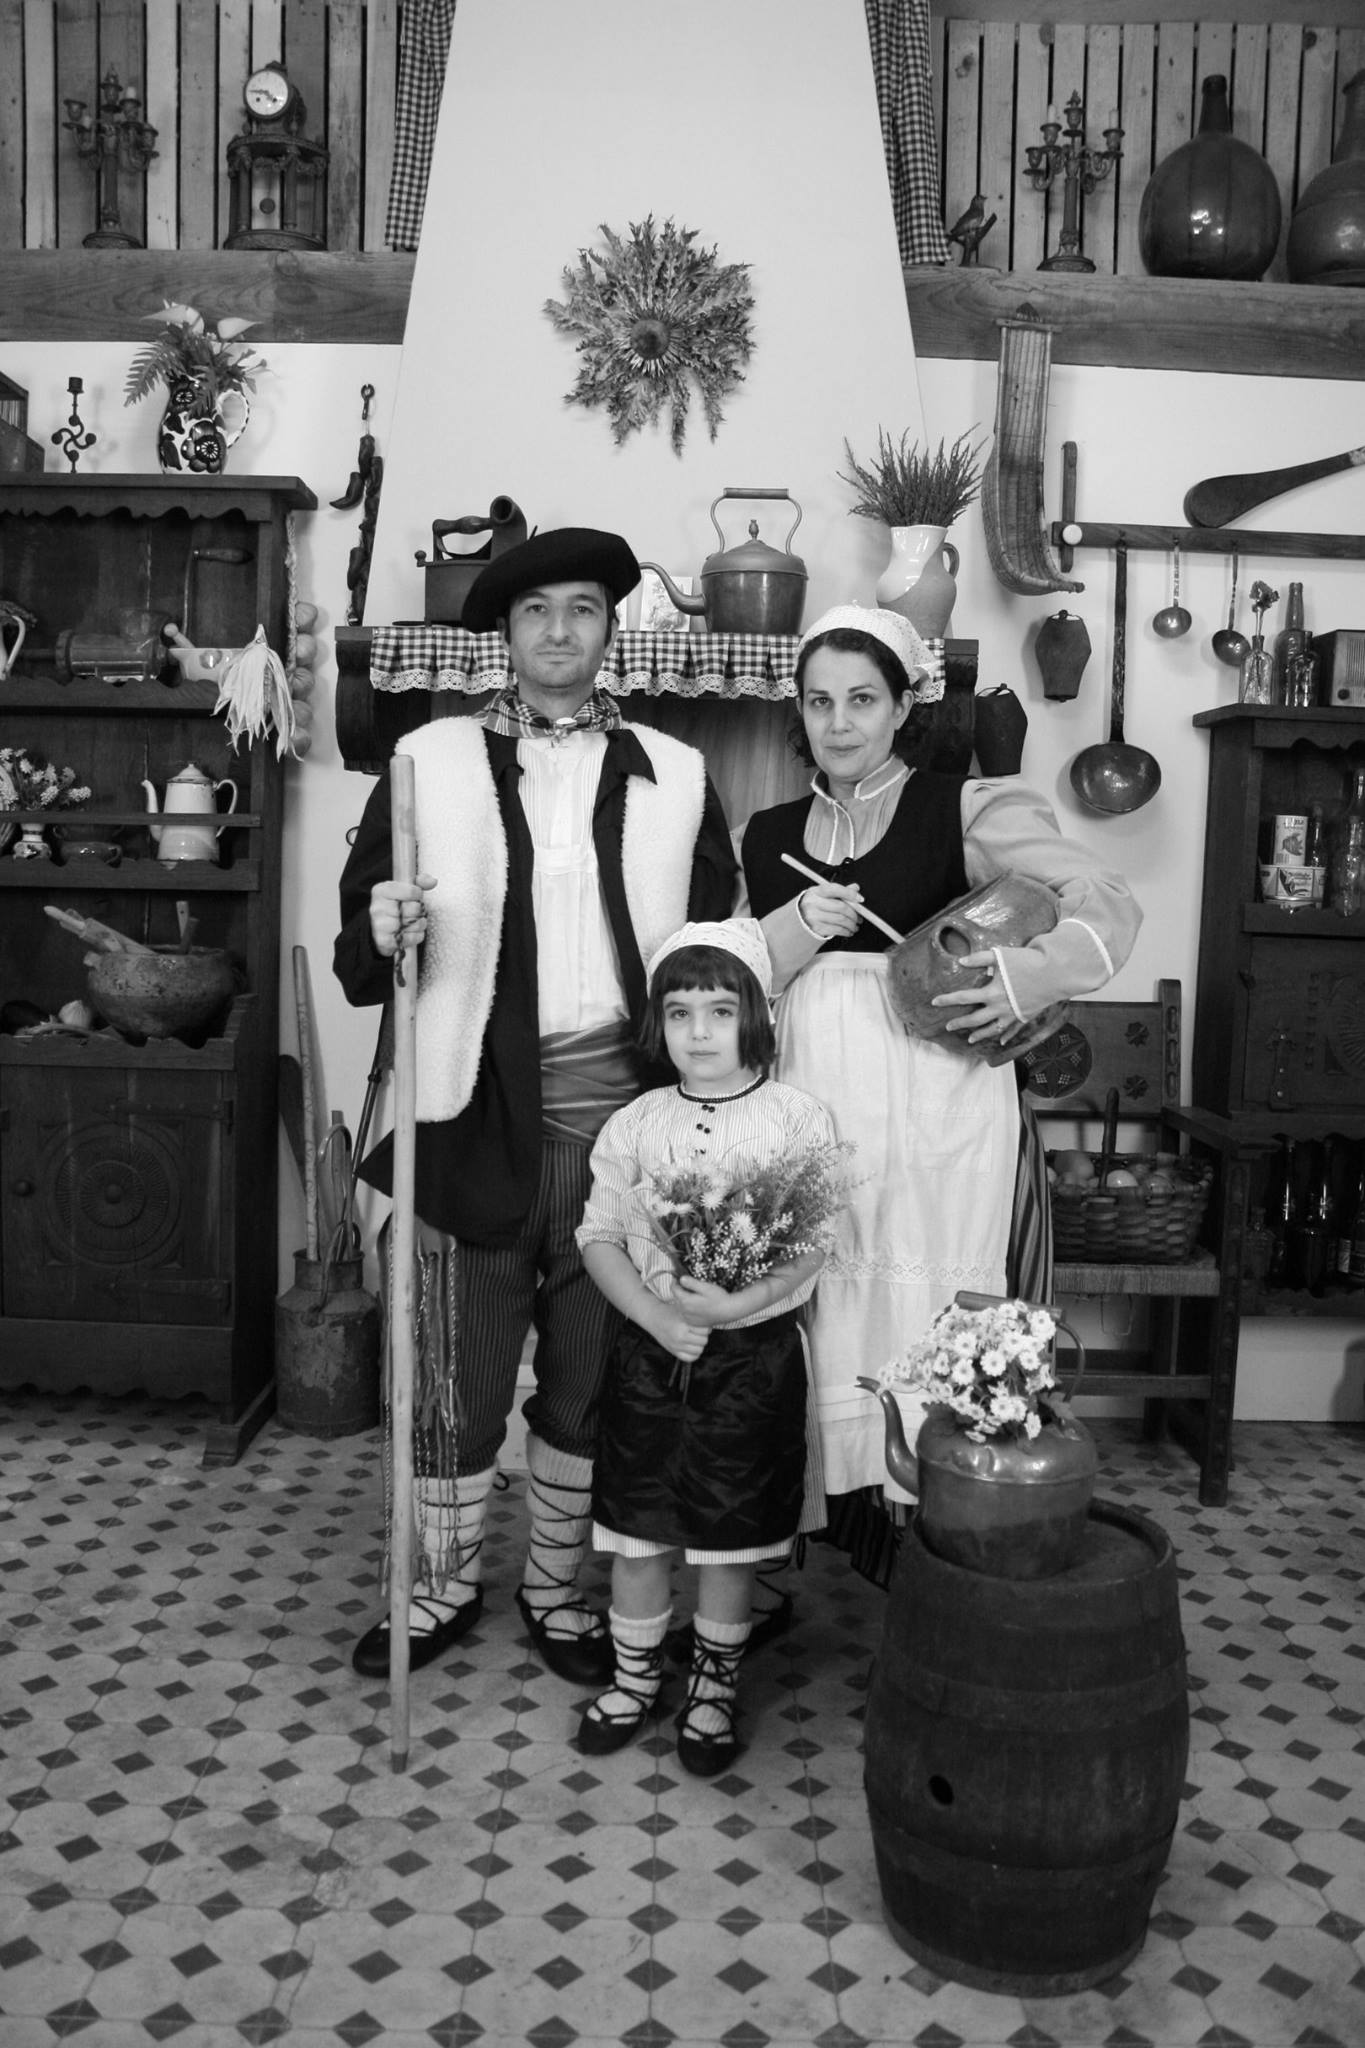 Dr. Colbert poses ironically with his family in Basque attire